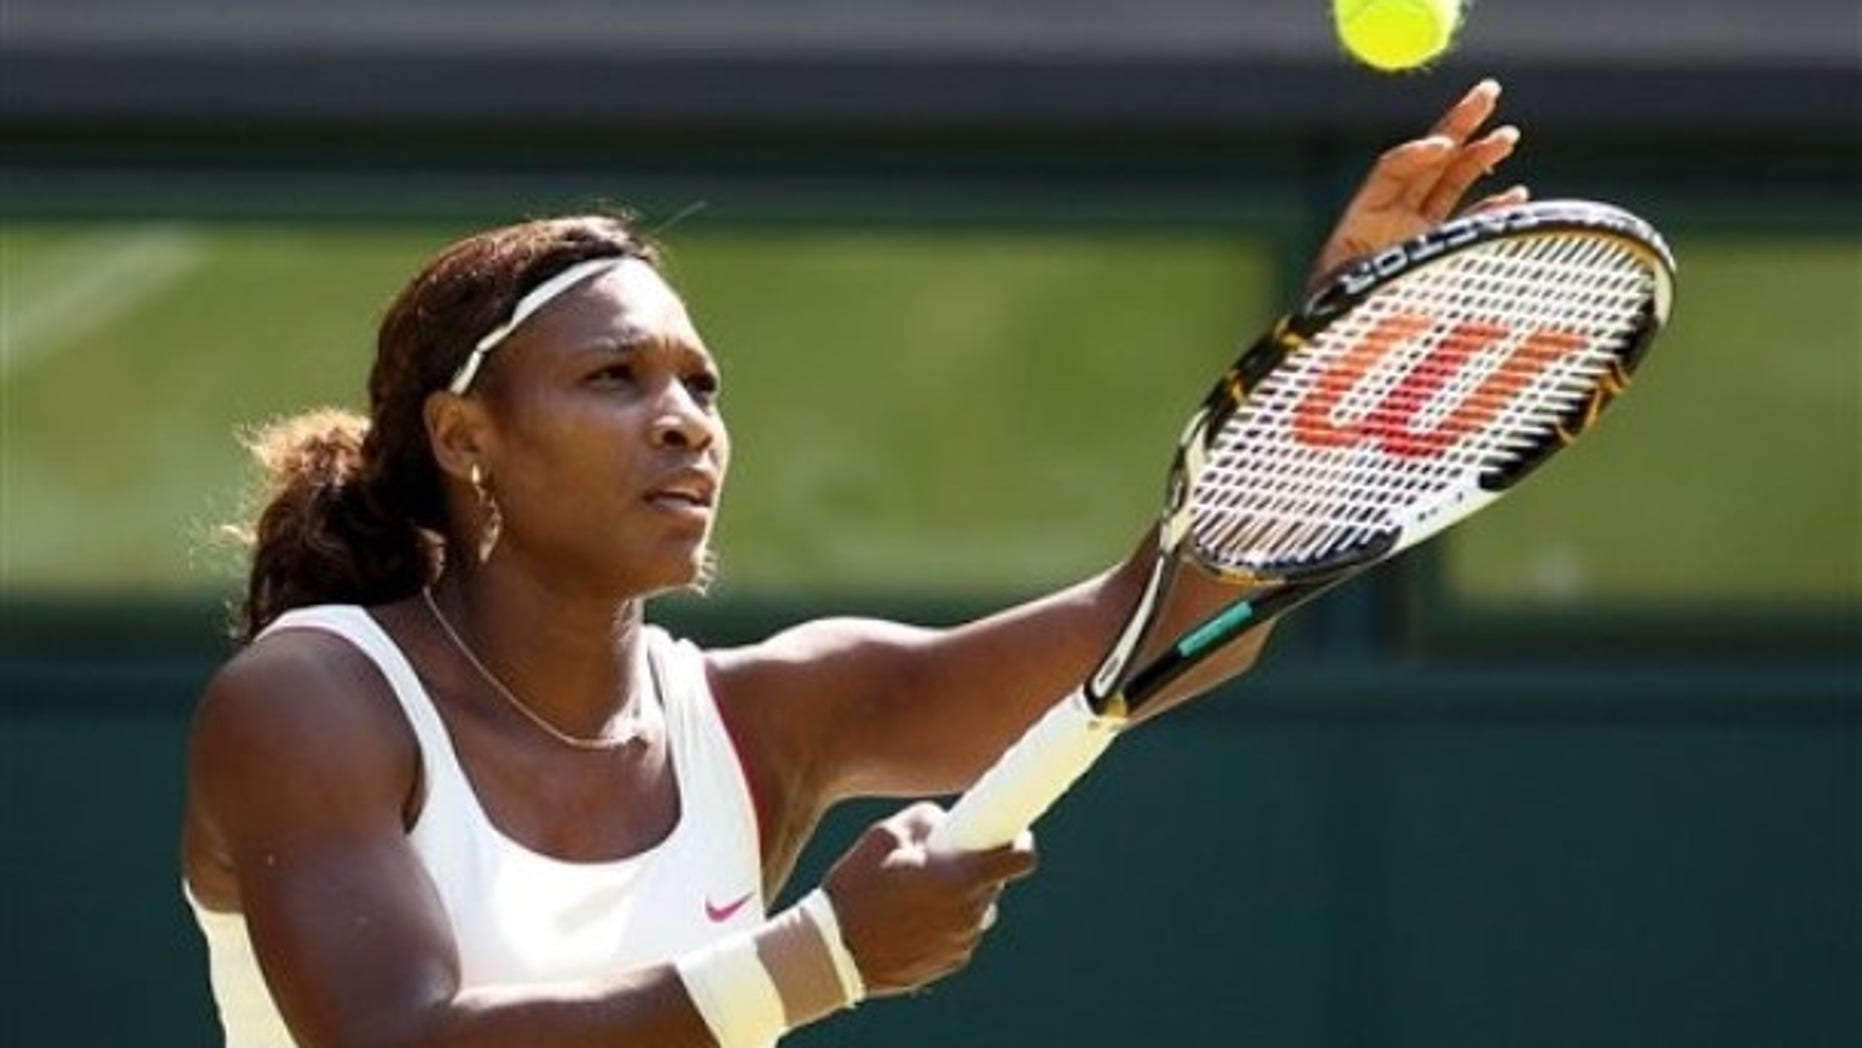 Venus Williams of the United States prepares to serve during her quarterfinal match against China's Li Na at the All England Lawn Tennis Championships at Wimbledon, Tuesday, June 29, 2010. (AP Photo/Anja Niedringhaus)